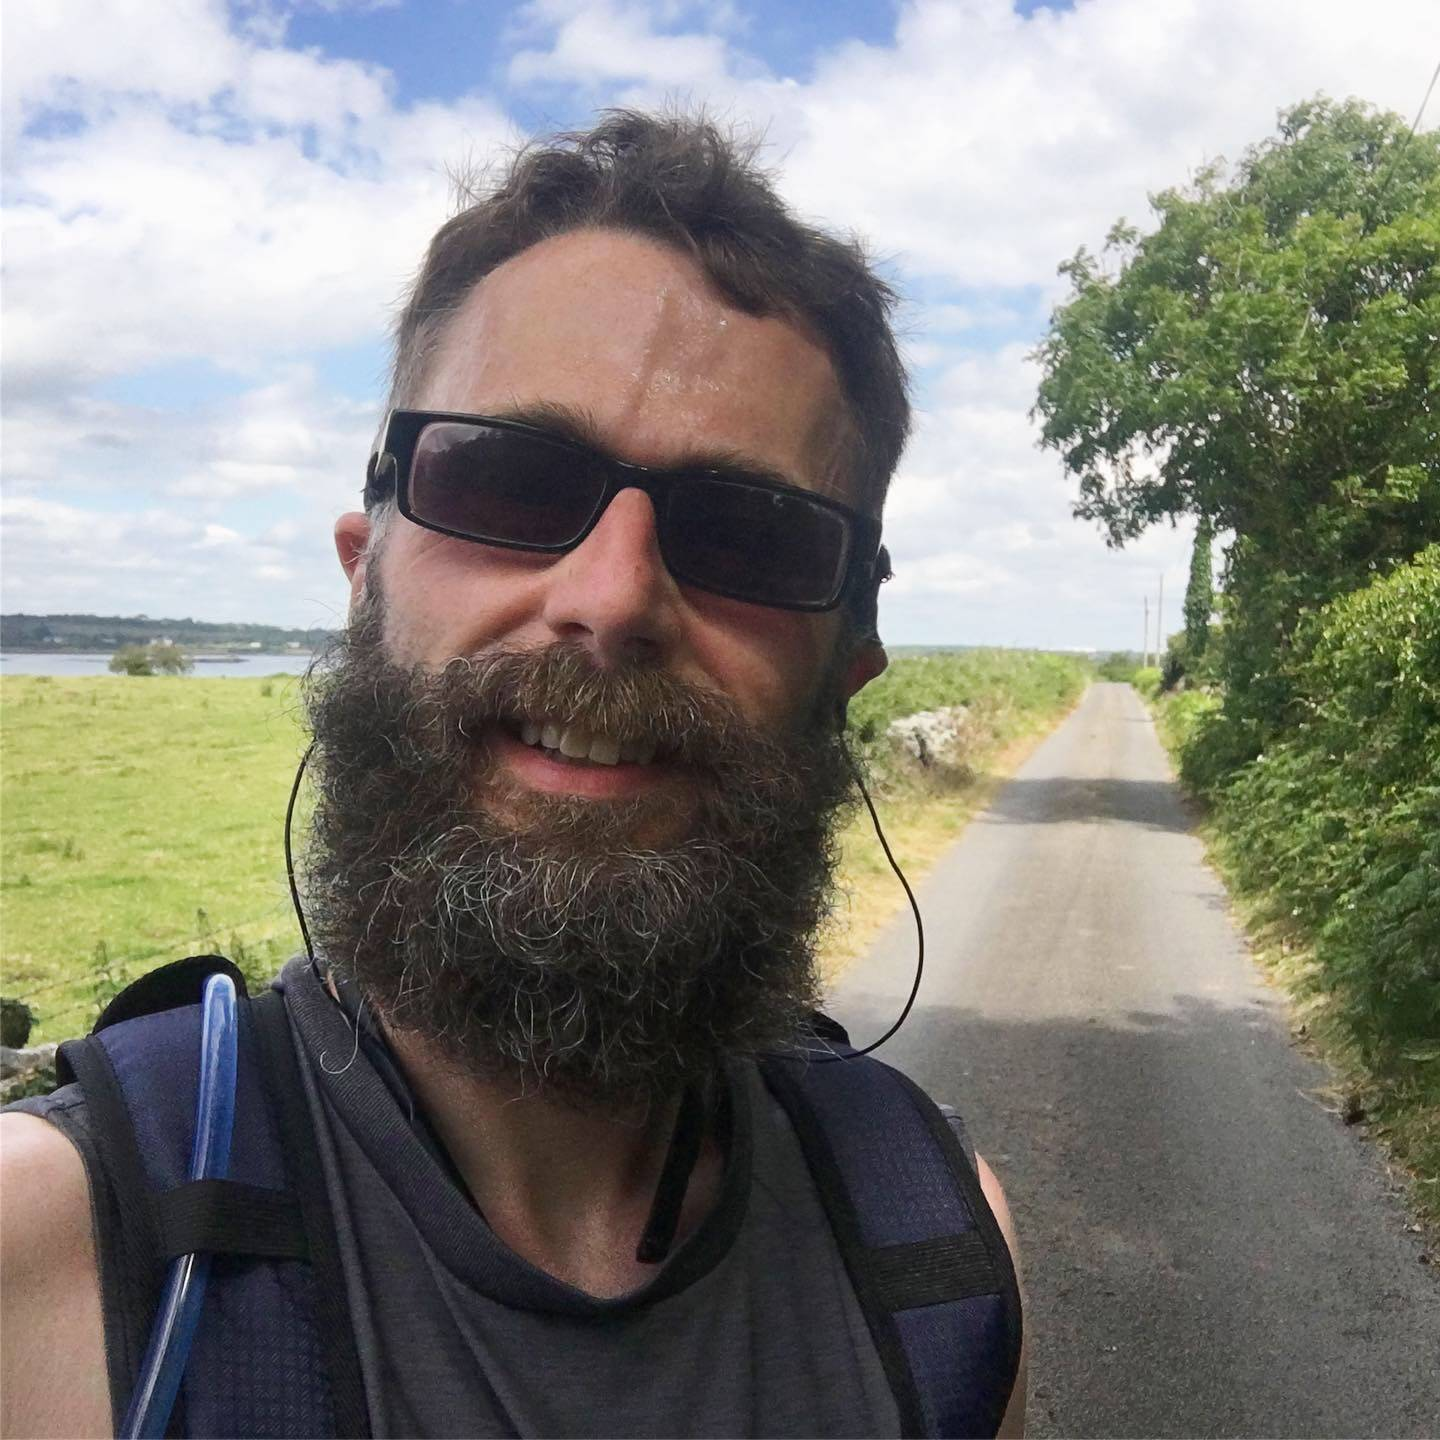 Me on the trail with a crazy beard near Renville by Oranmore.